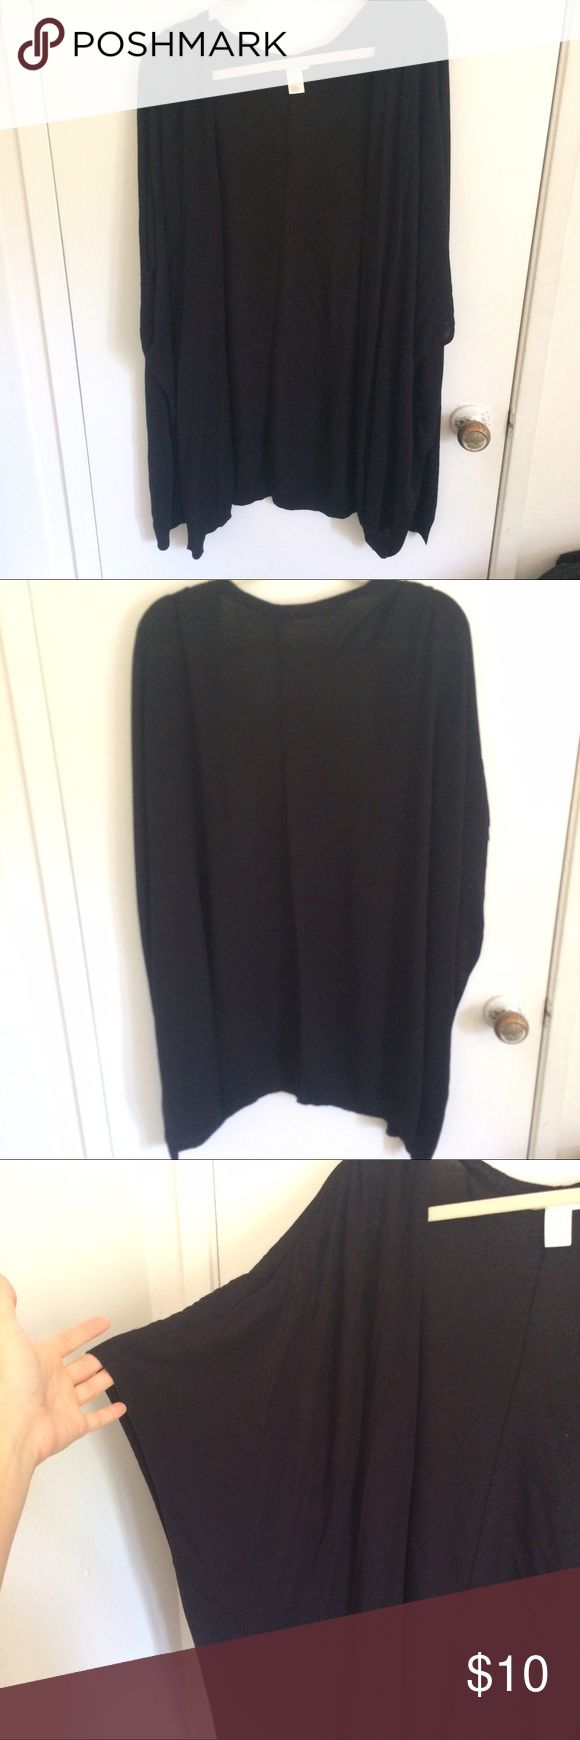 H&M Black Oversized Batwing Cardigan Cover Up XS In excellent used condition with no flaws. XS but fits oversized so would fit S M L as well. H&M Sweaters Cardigans